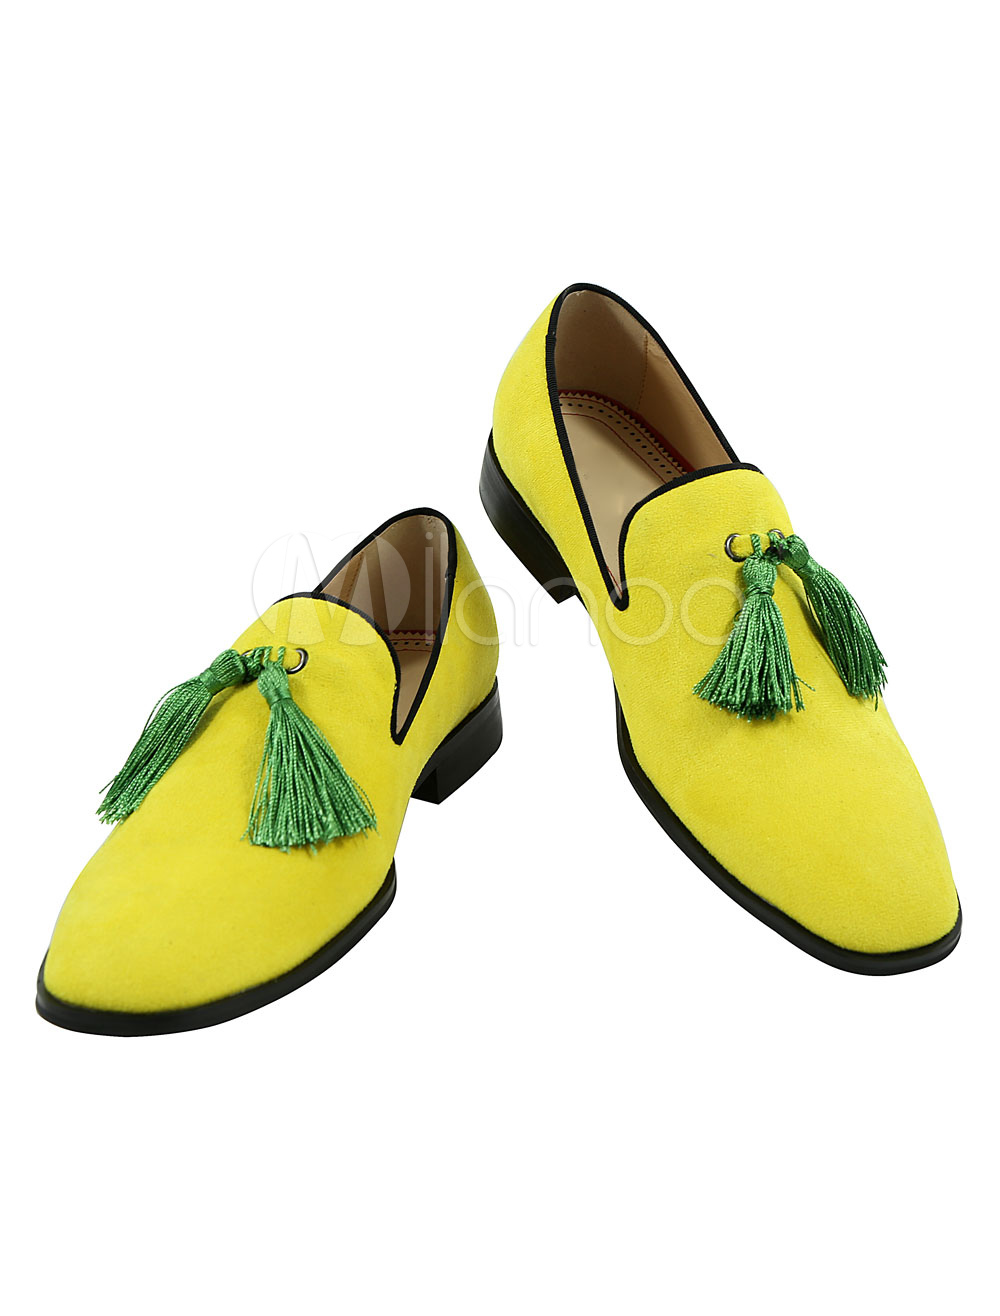 Buy Yellow Men's Loafers Suede Leather Round Toe Slip On Shoes With Tassels for $78.84 in Milanoo store